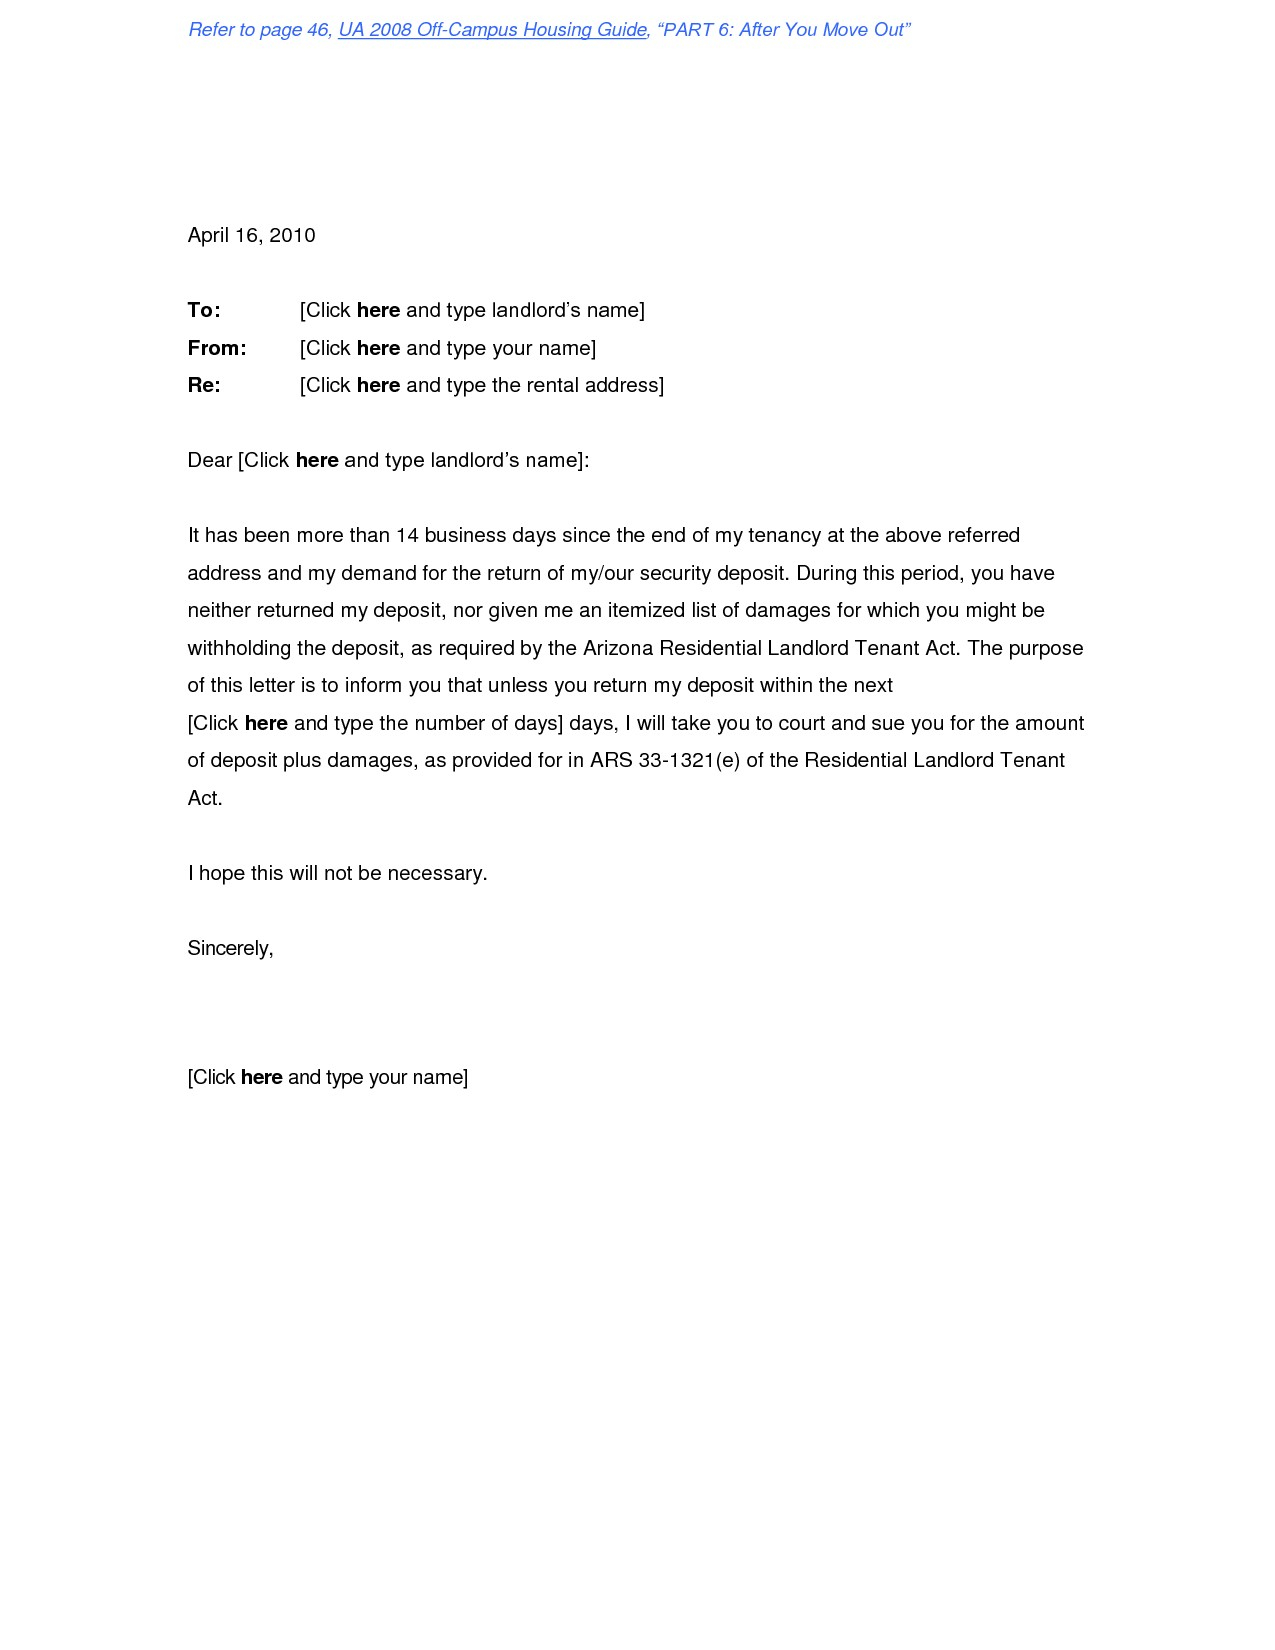 Security Deposit Demand Letter Template - Refund Receipt Template Security Deposit form Letter Re Security